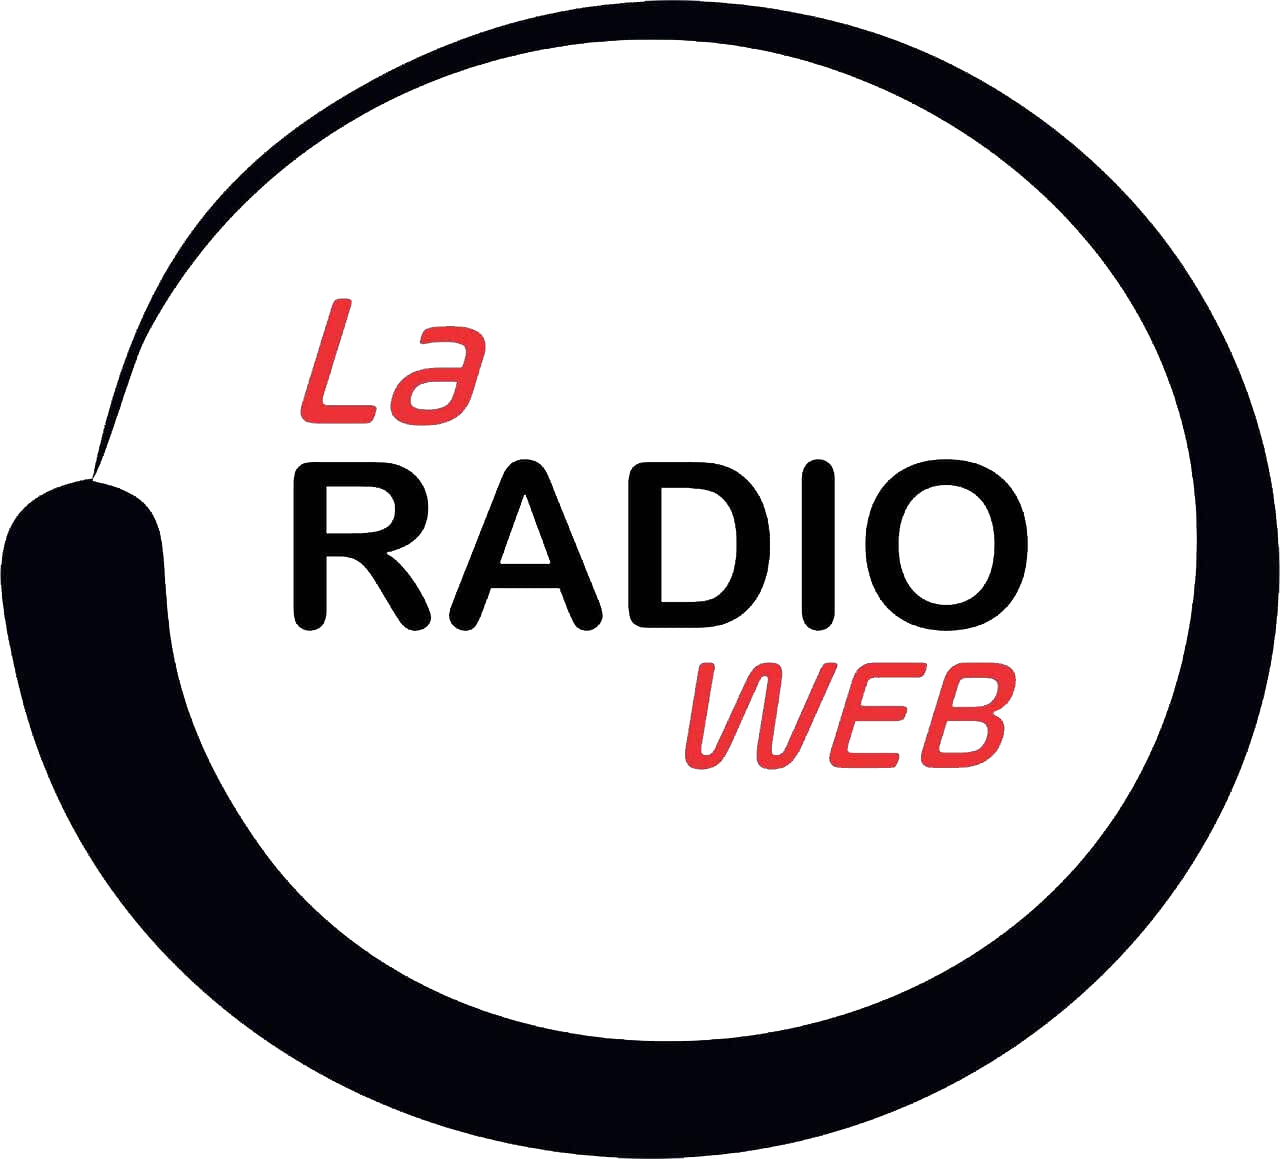 La Radio Web - Emisora On Line